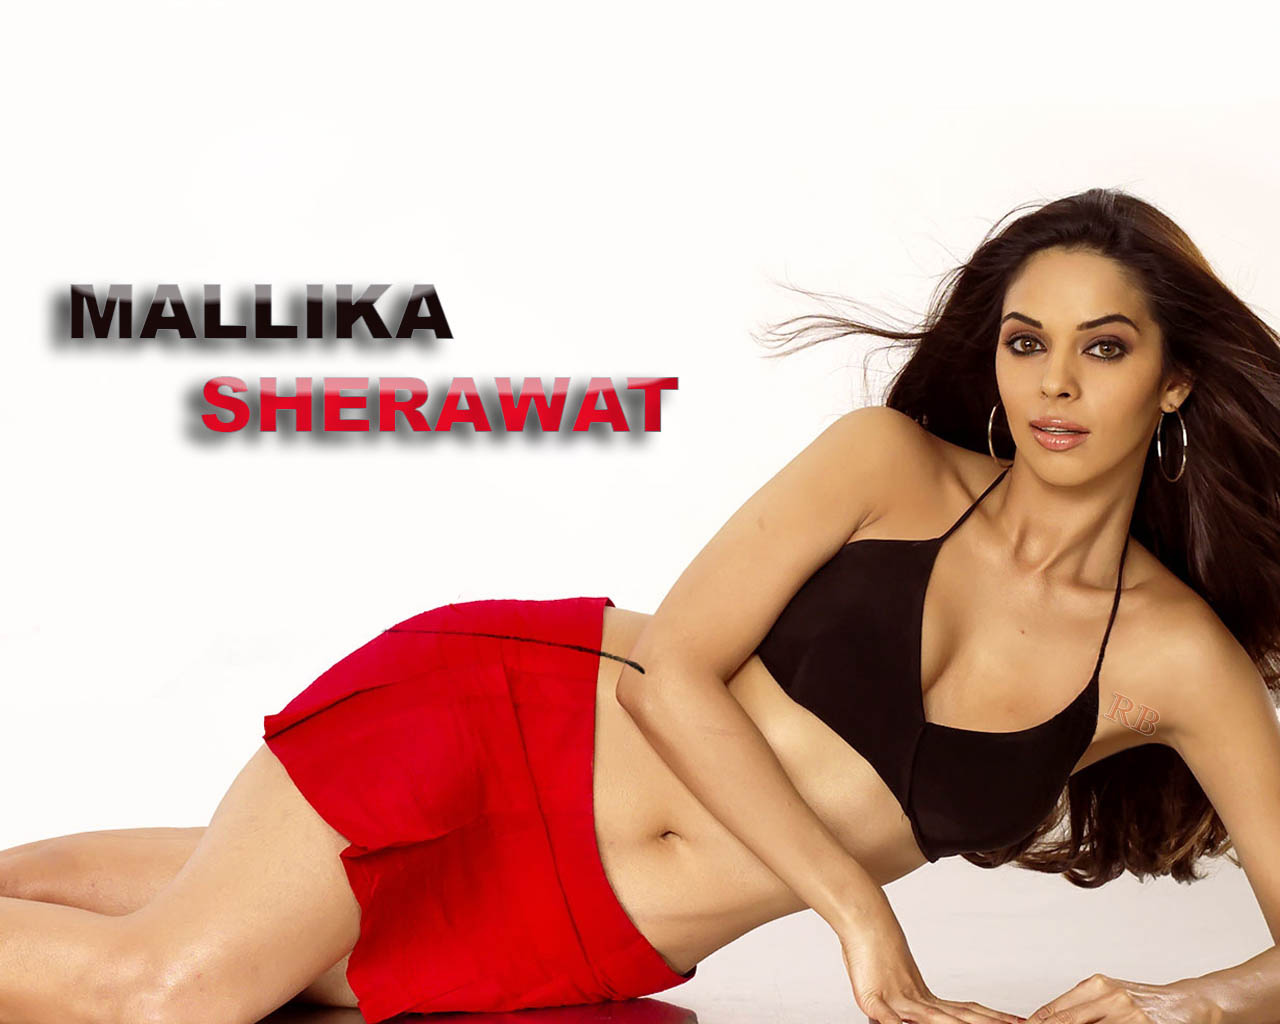 wallpapers mallika sherawat bikini - photo #26